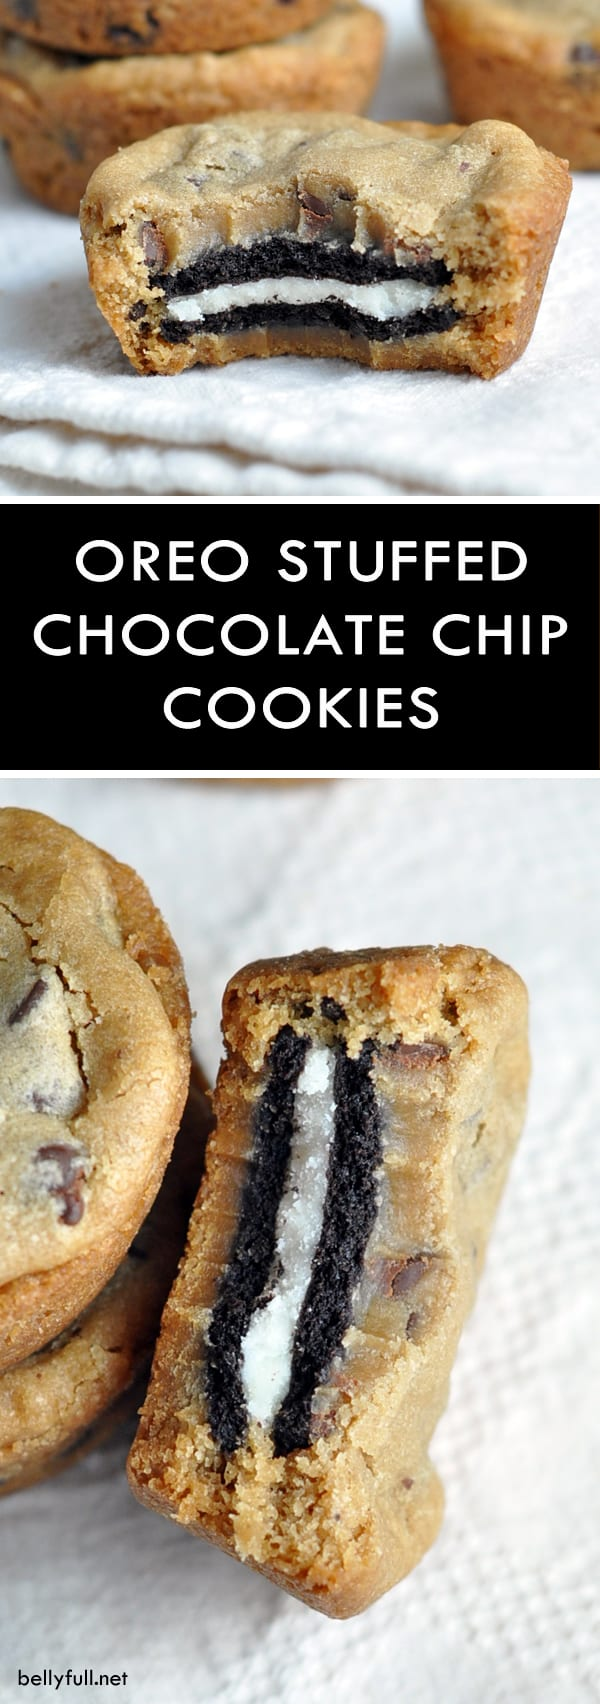 oreo stuffed chocolate chip cookies in muffin pan